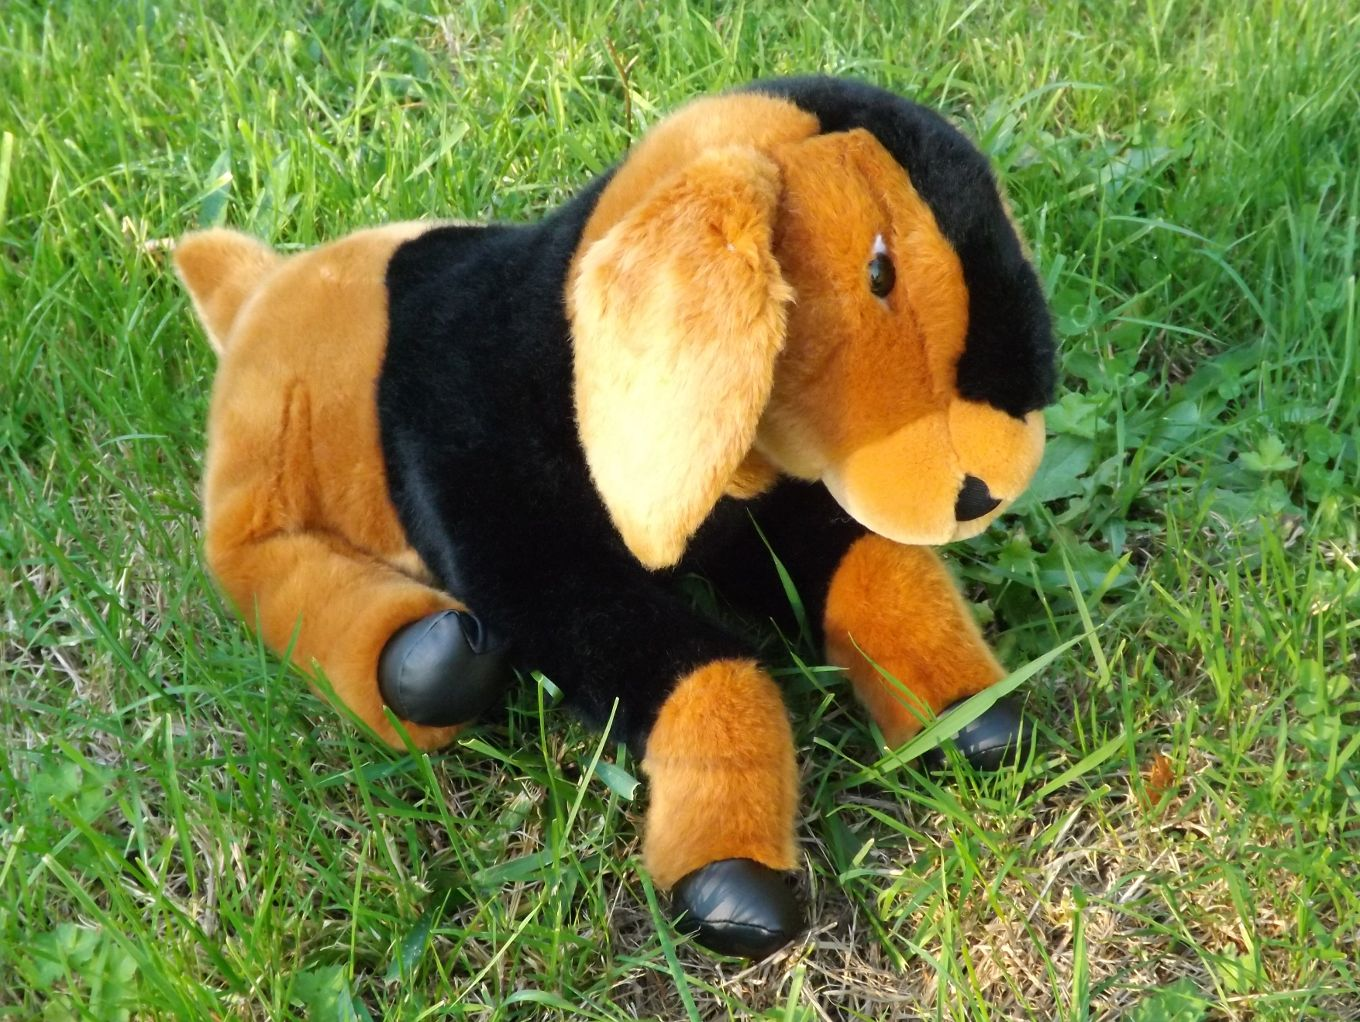 Z4031-Nubian-Goat-Stuffed-Animal